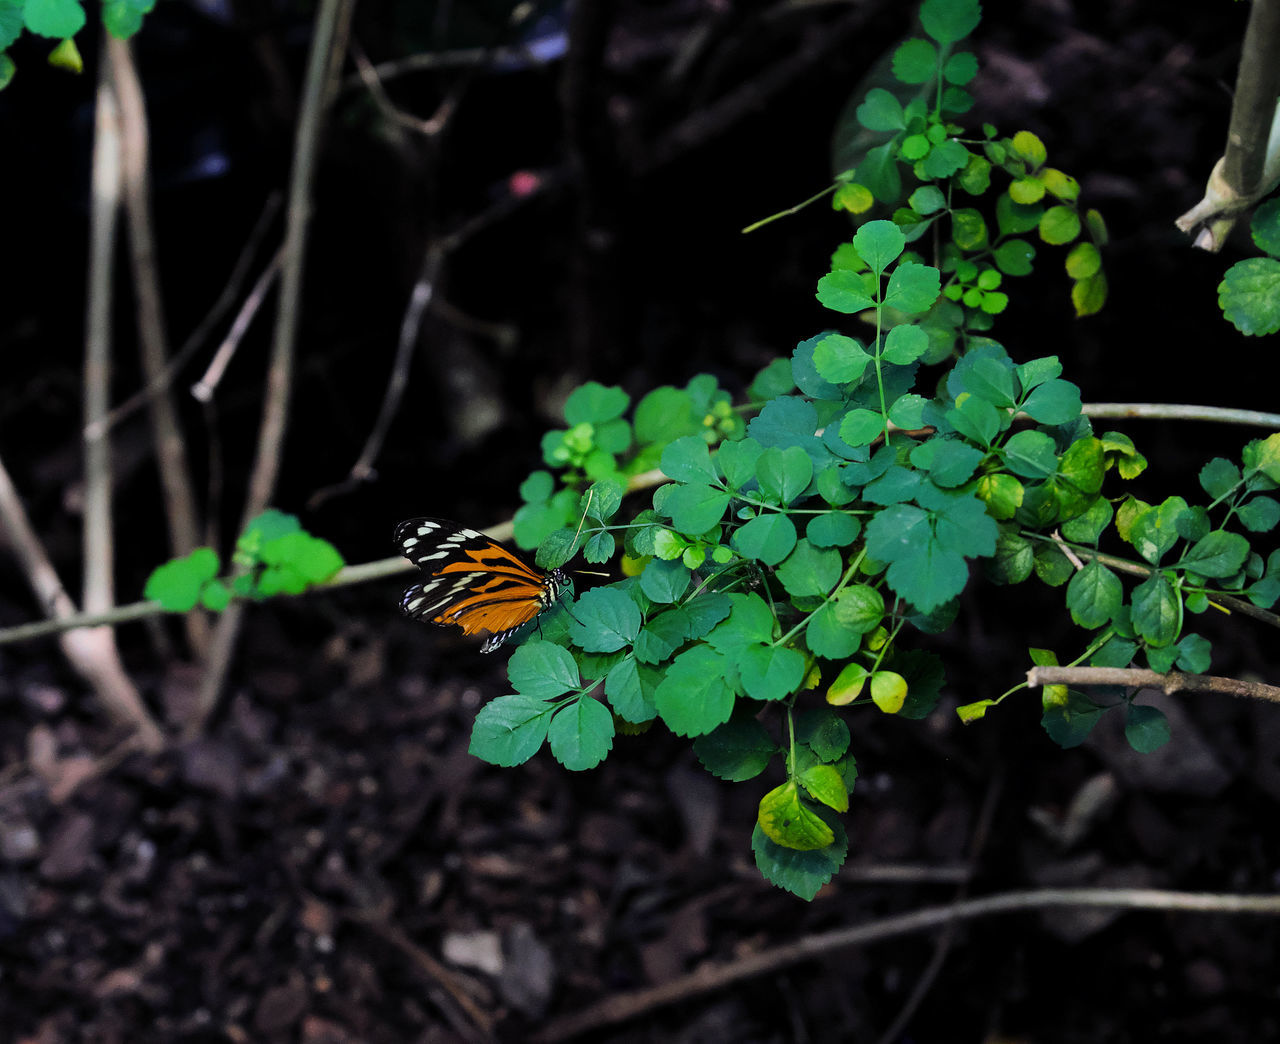 animal themes, one animal, animals in the wild, insect, growth, plant, leaf, animal wildlife, nature, butterfly - insect, outdoors, no people, focus on foreground, day, fragility, close-up, green color, beauty in nature, freshness, perching, flower head